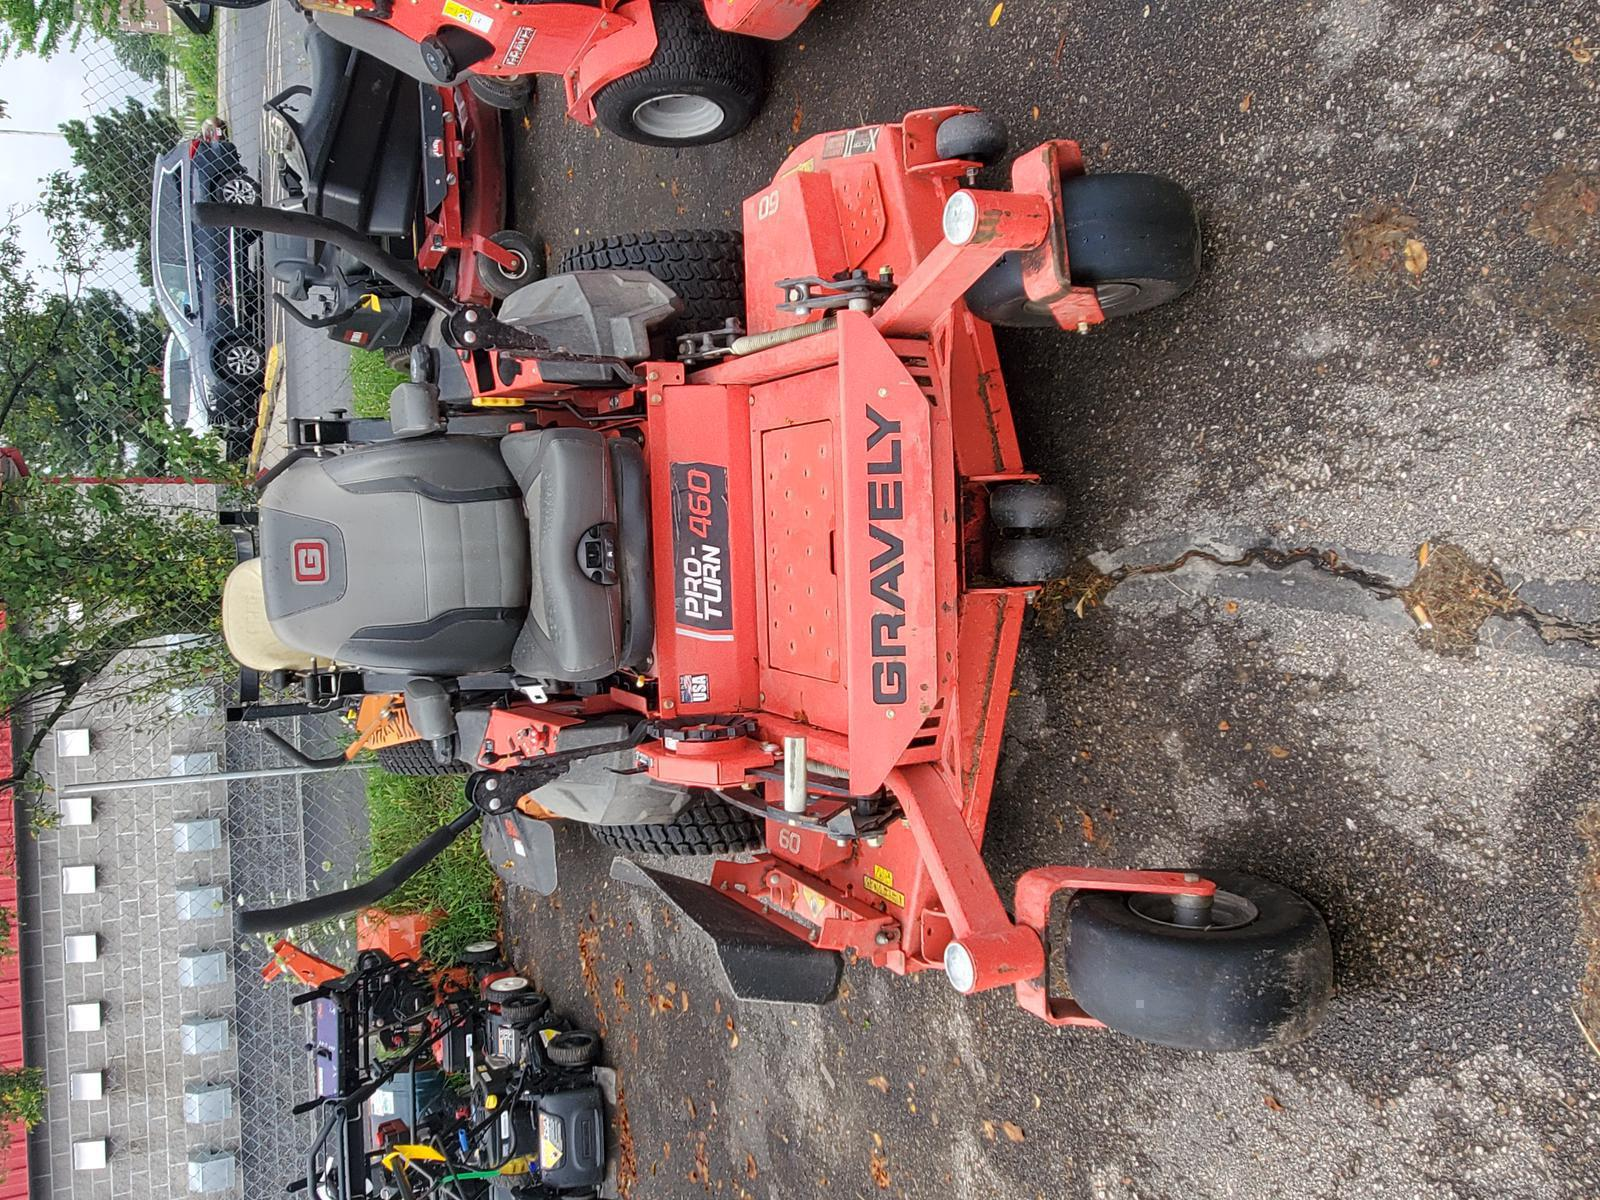 In-Stock New and Used Models For Sale in Middleton, WI Middleton